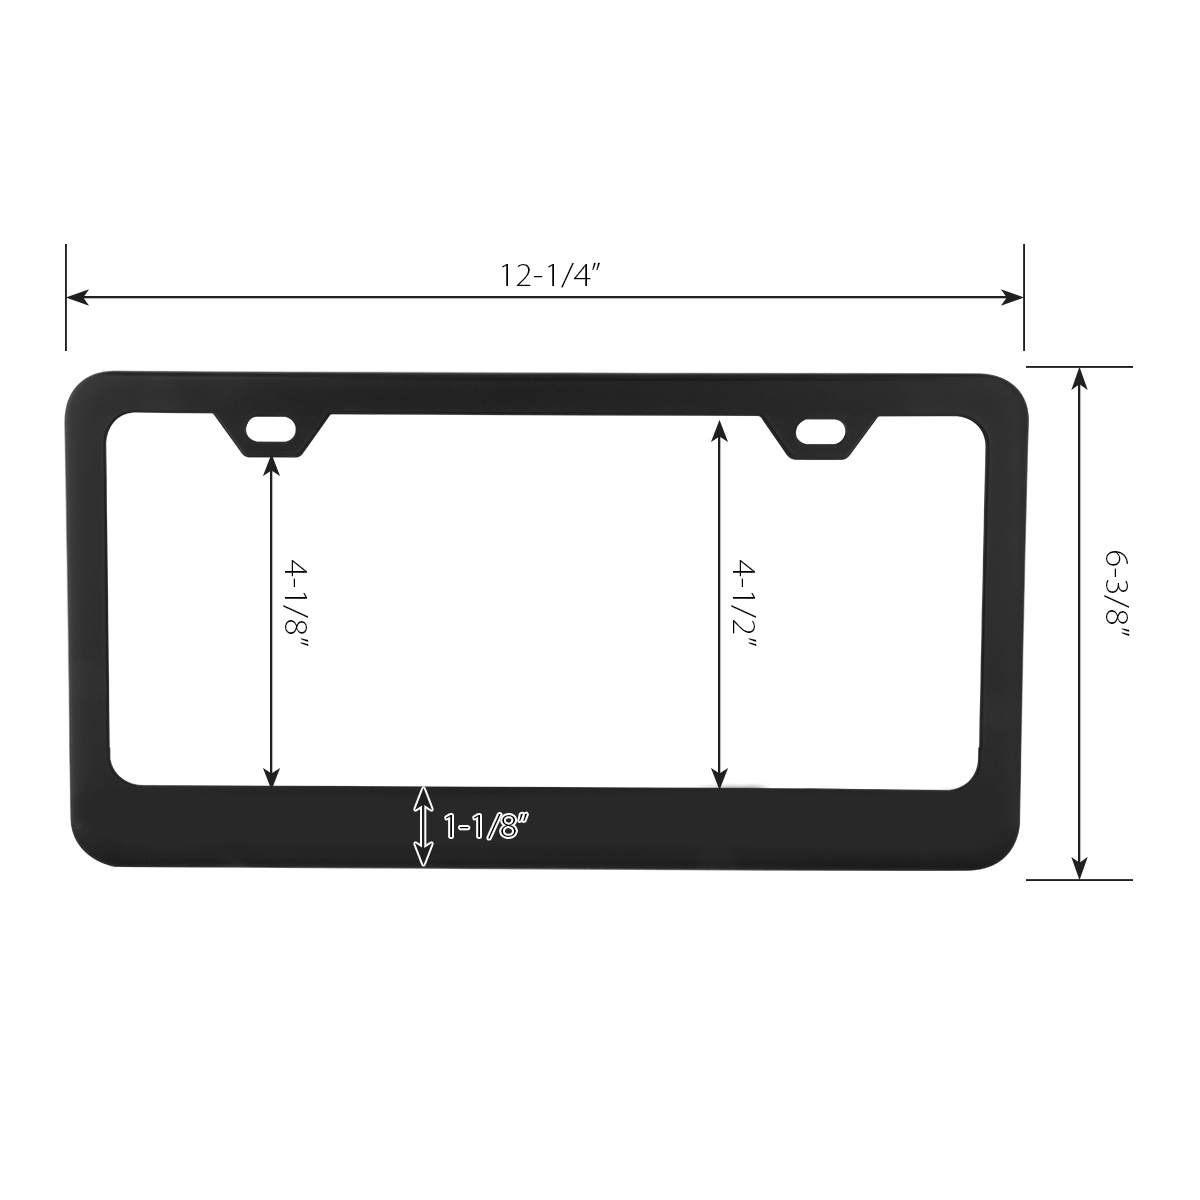 60439 Flat/Matte Plain Black 2 Hole License Plate Frame - Measurements